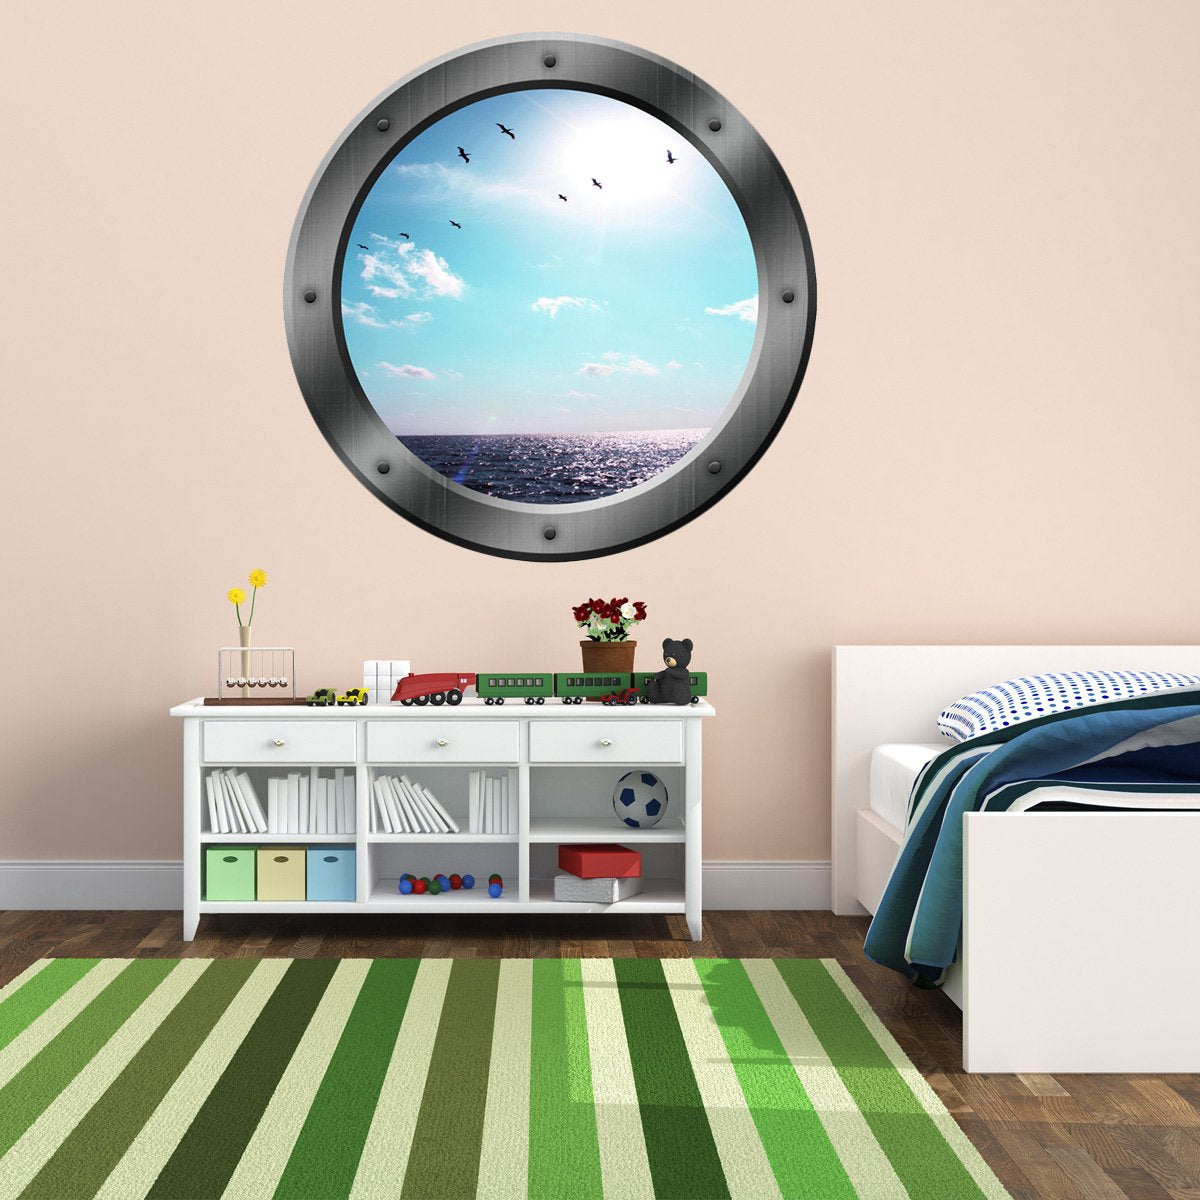 VWAQ Sea Porthole Window Ocean View Wall Decal - PO14 - VWAQ Vinyl Wall Art Quotes and Prints